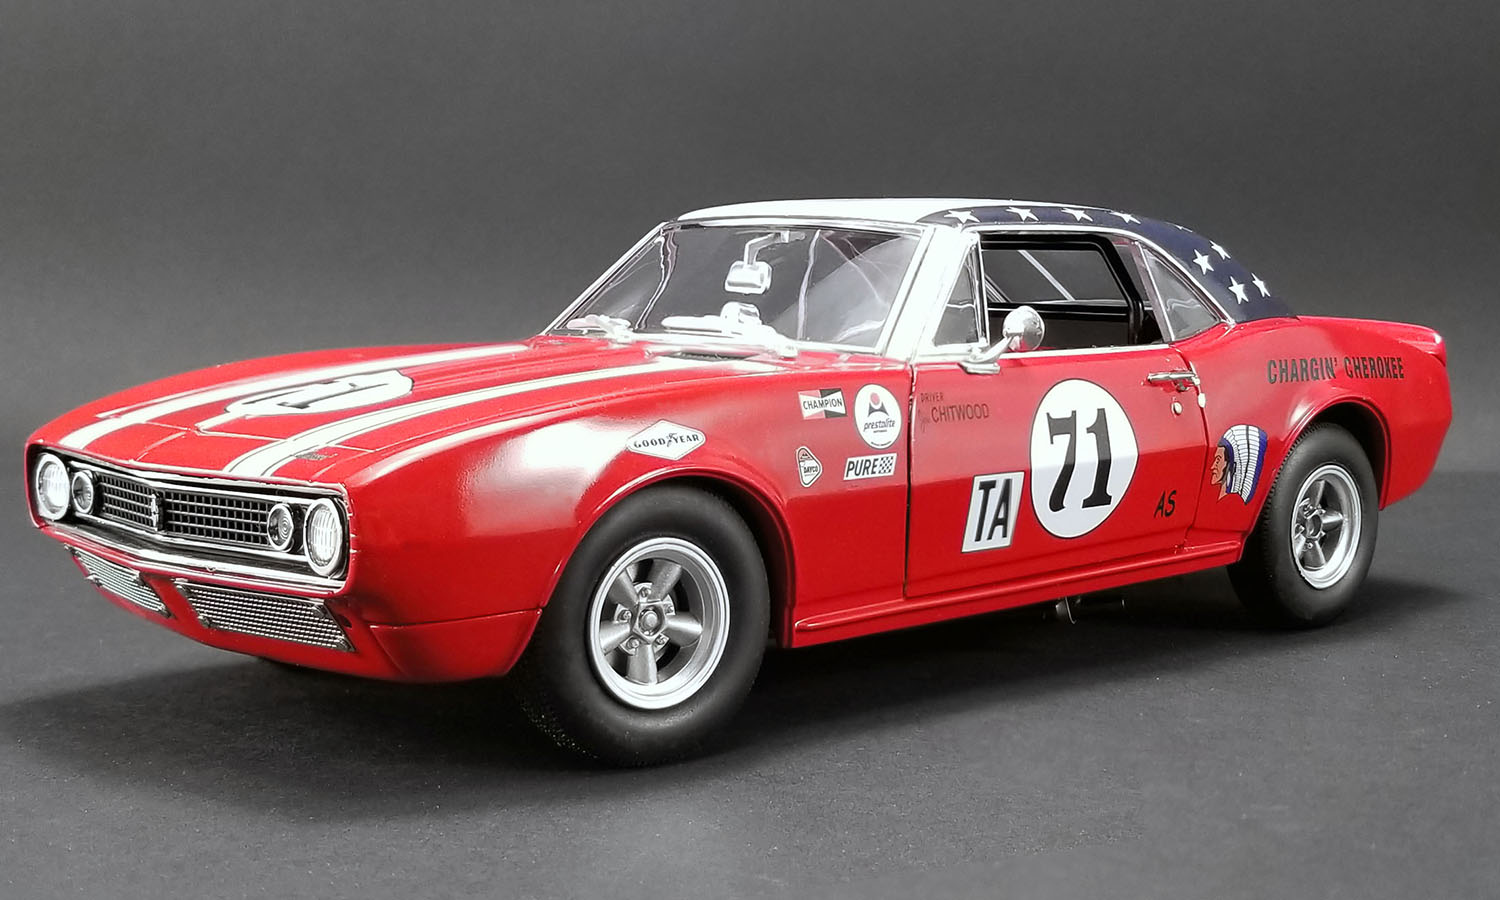 ACME 1:18 1968年デイトナ24時間 1967年モデル シボレー カマロ No.711967 CHEVROLET CAMARO - JOIE CHITWOOD - 1968 DAYTONA 24 HOURS 1/18 by ACME USA